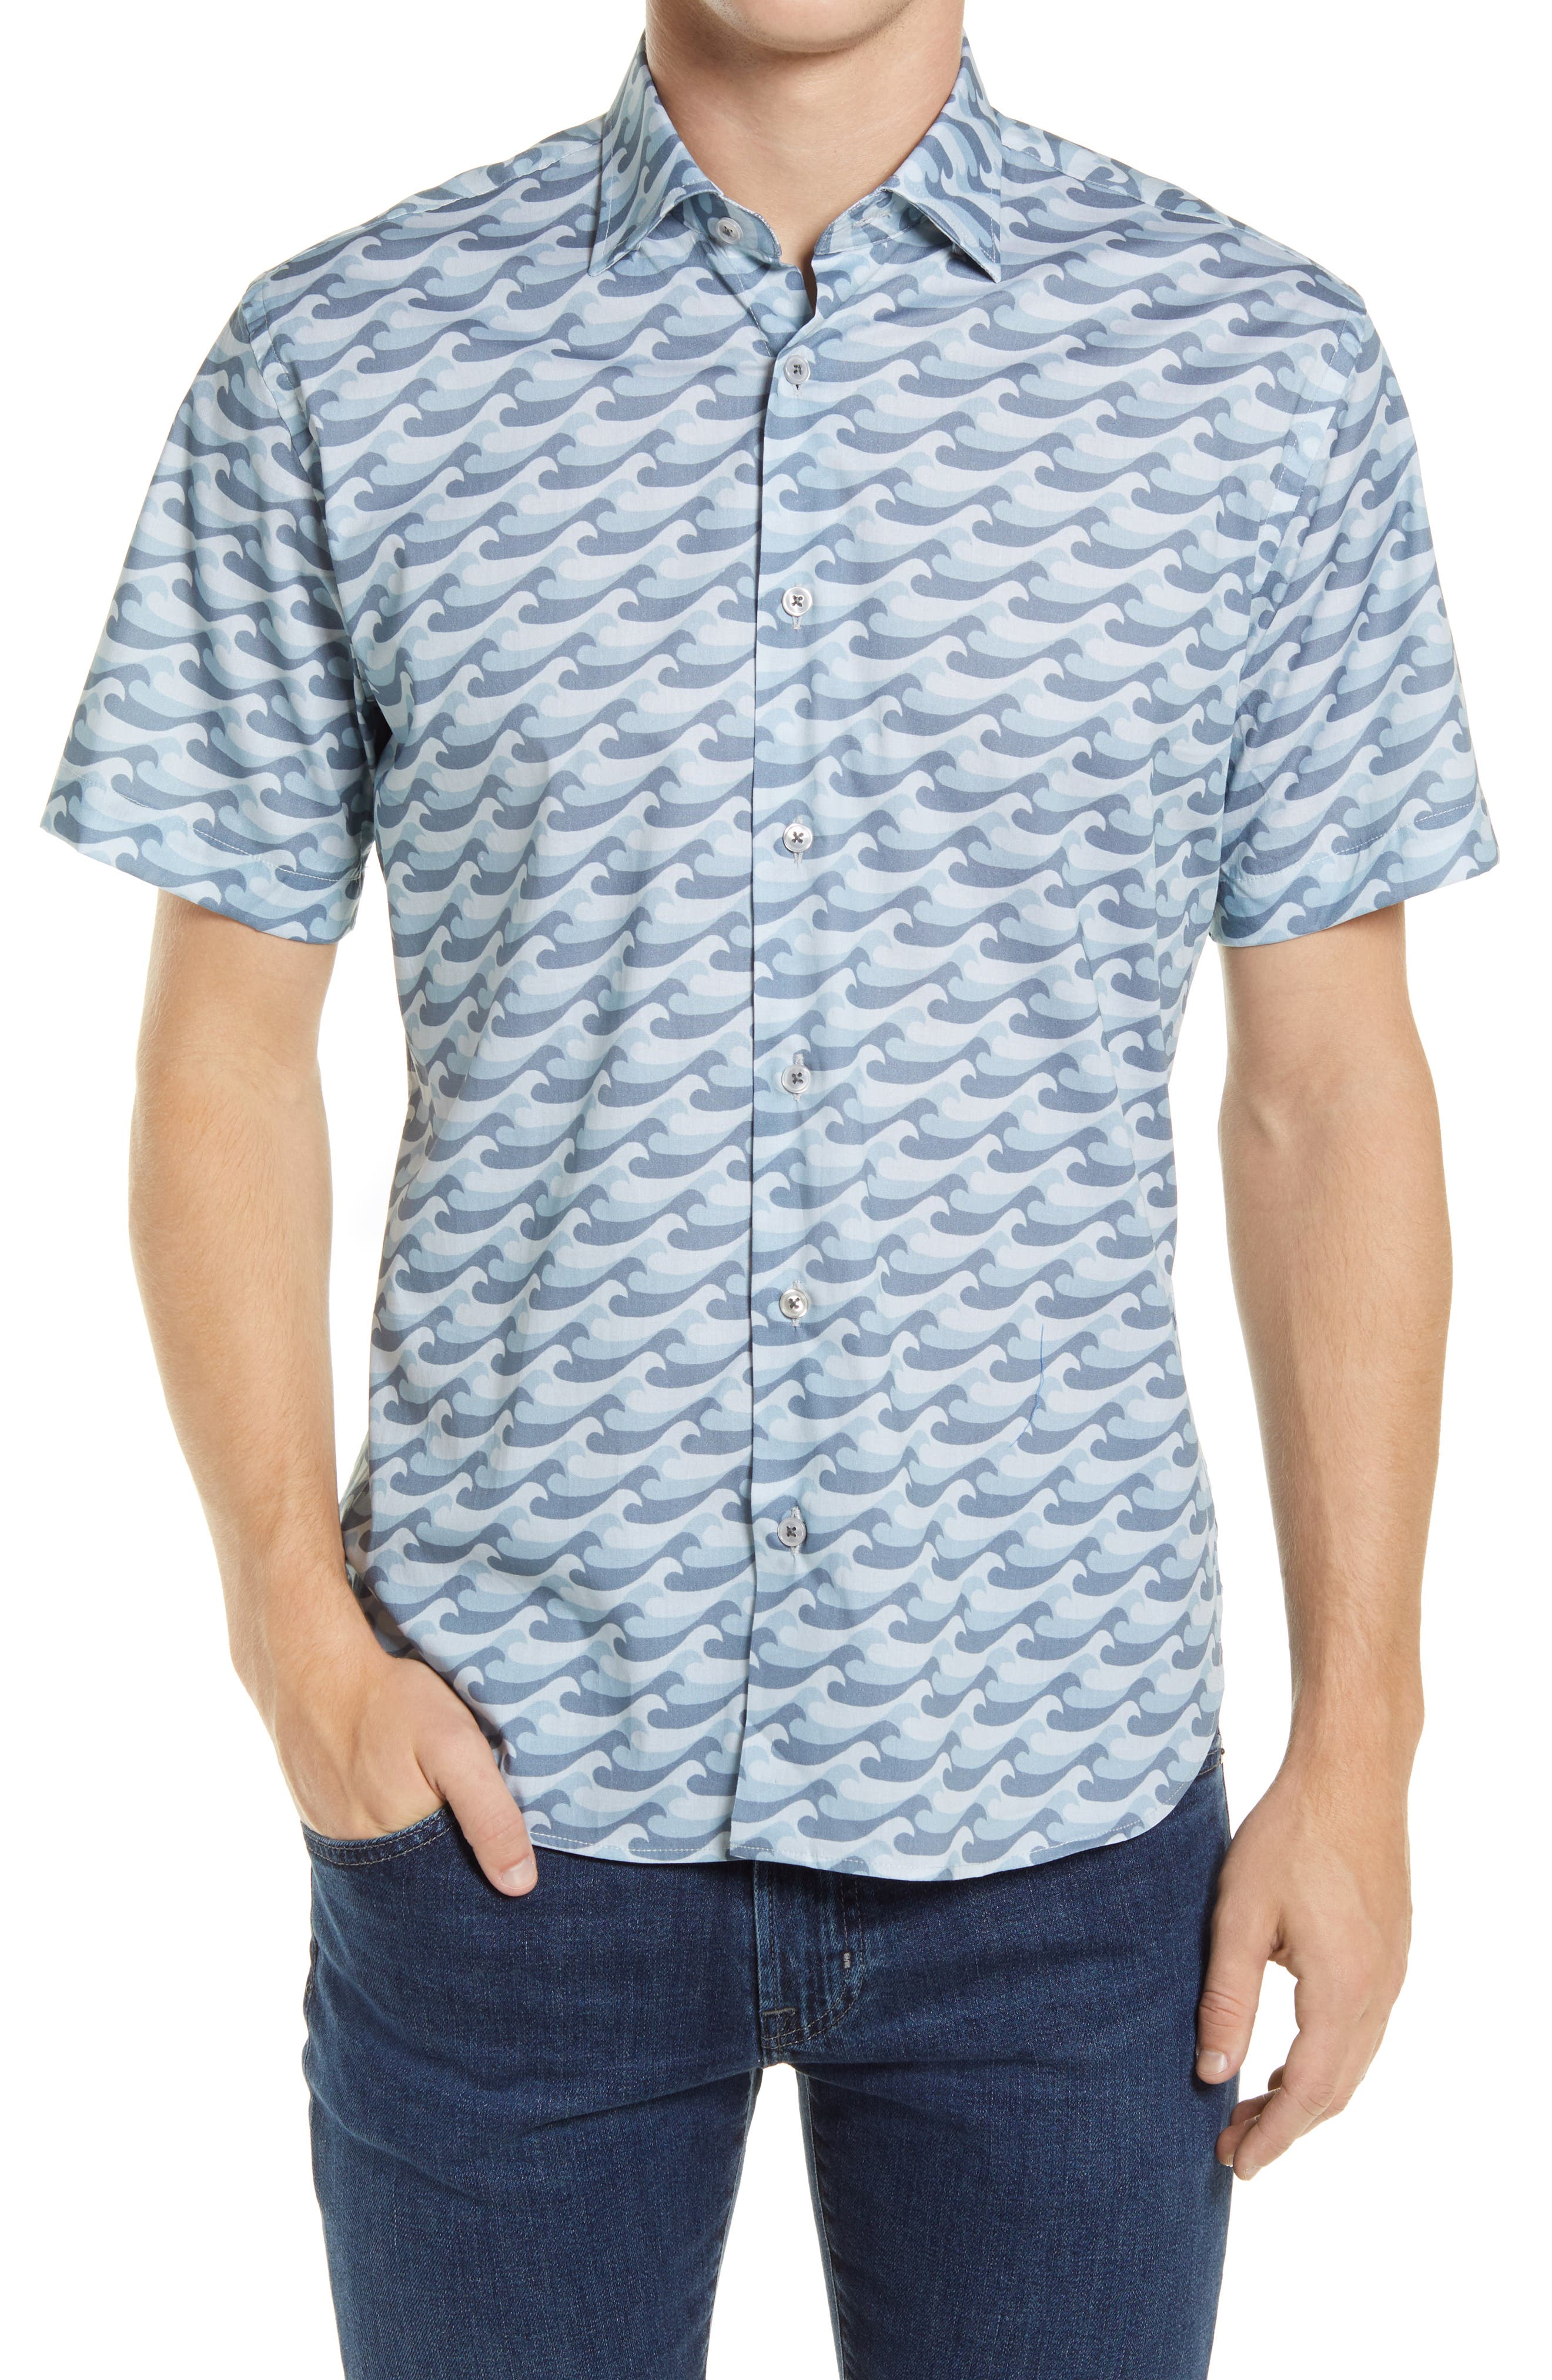 Catch The Wave Short Sleeve Stretch Button-Up Shirt